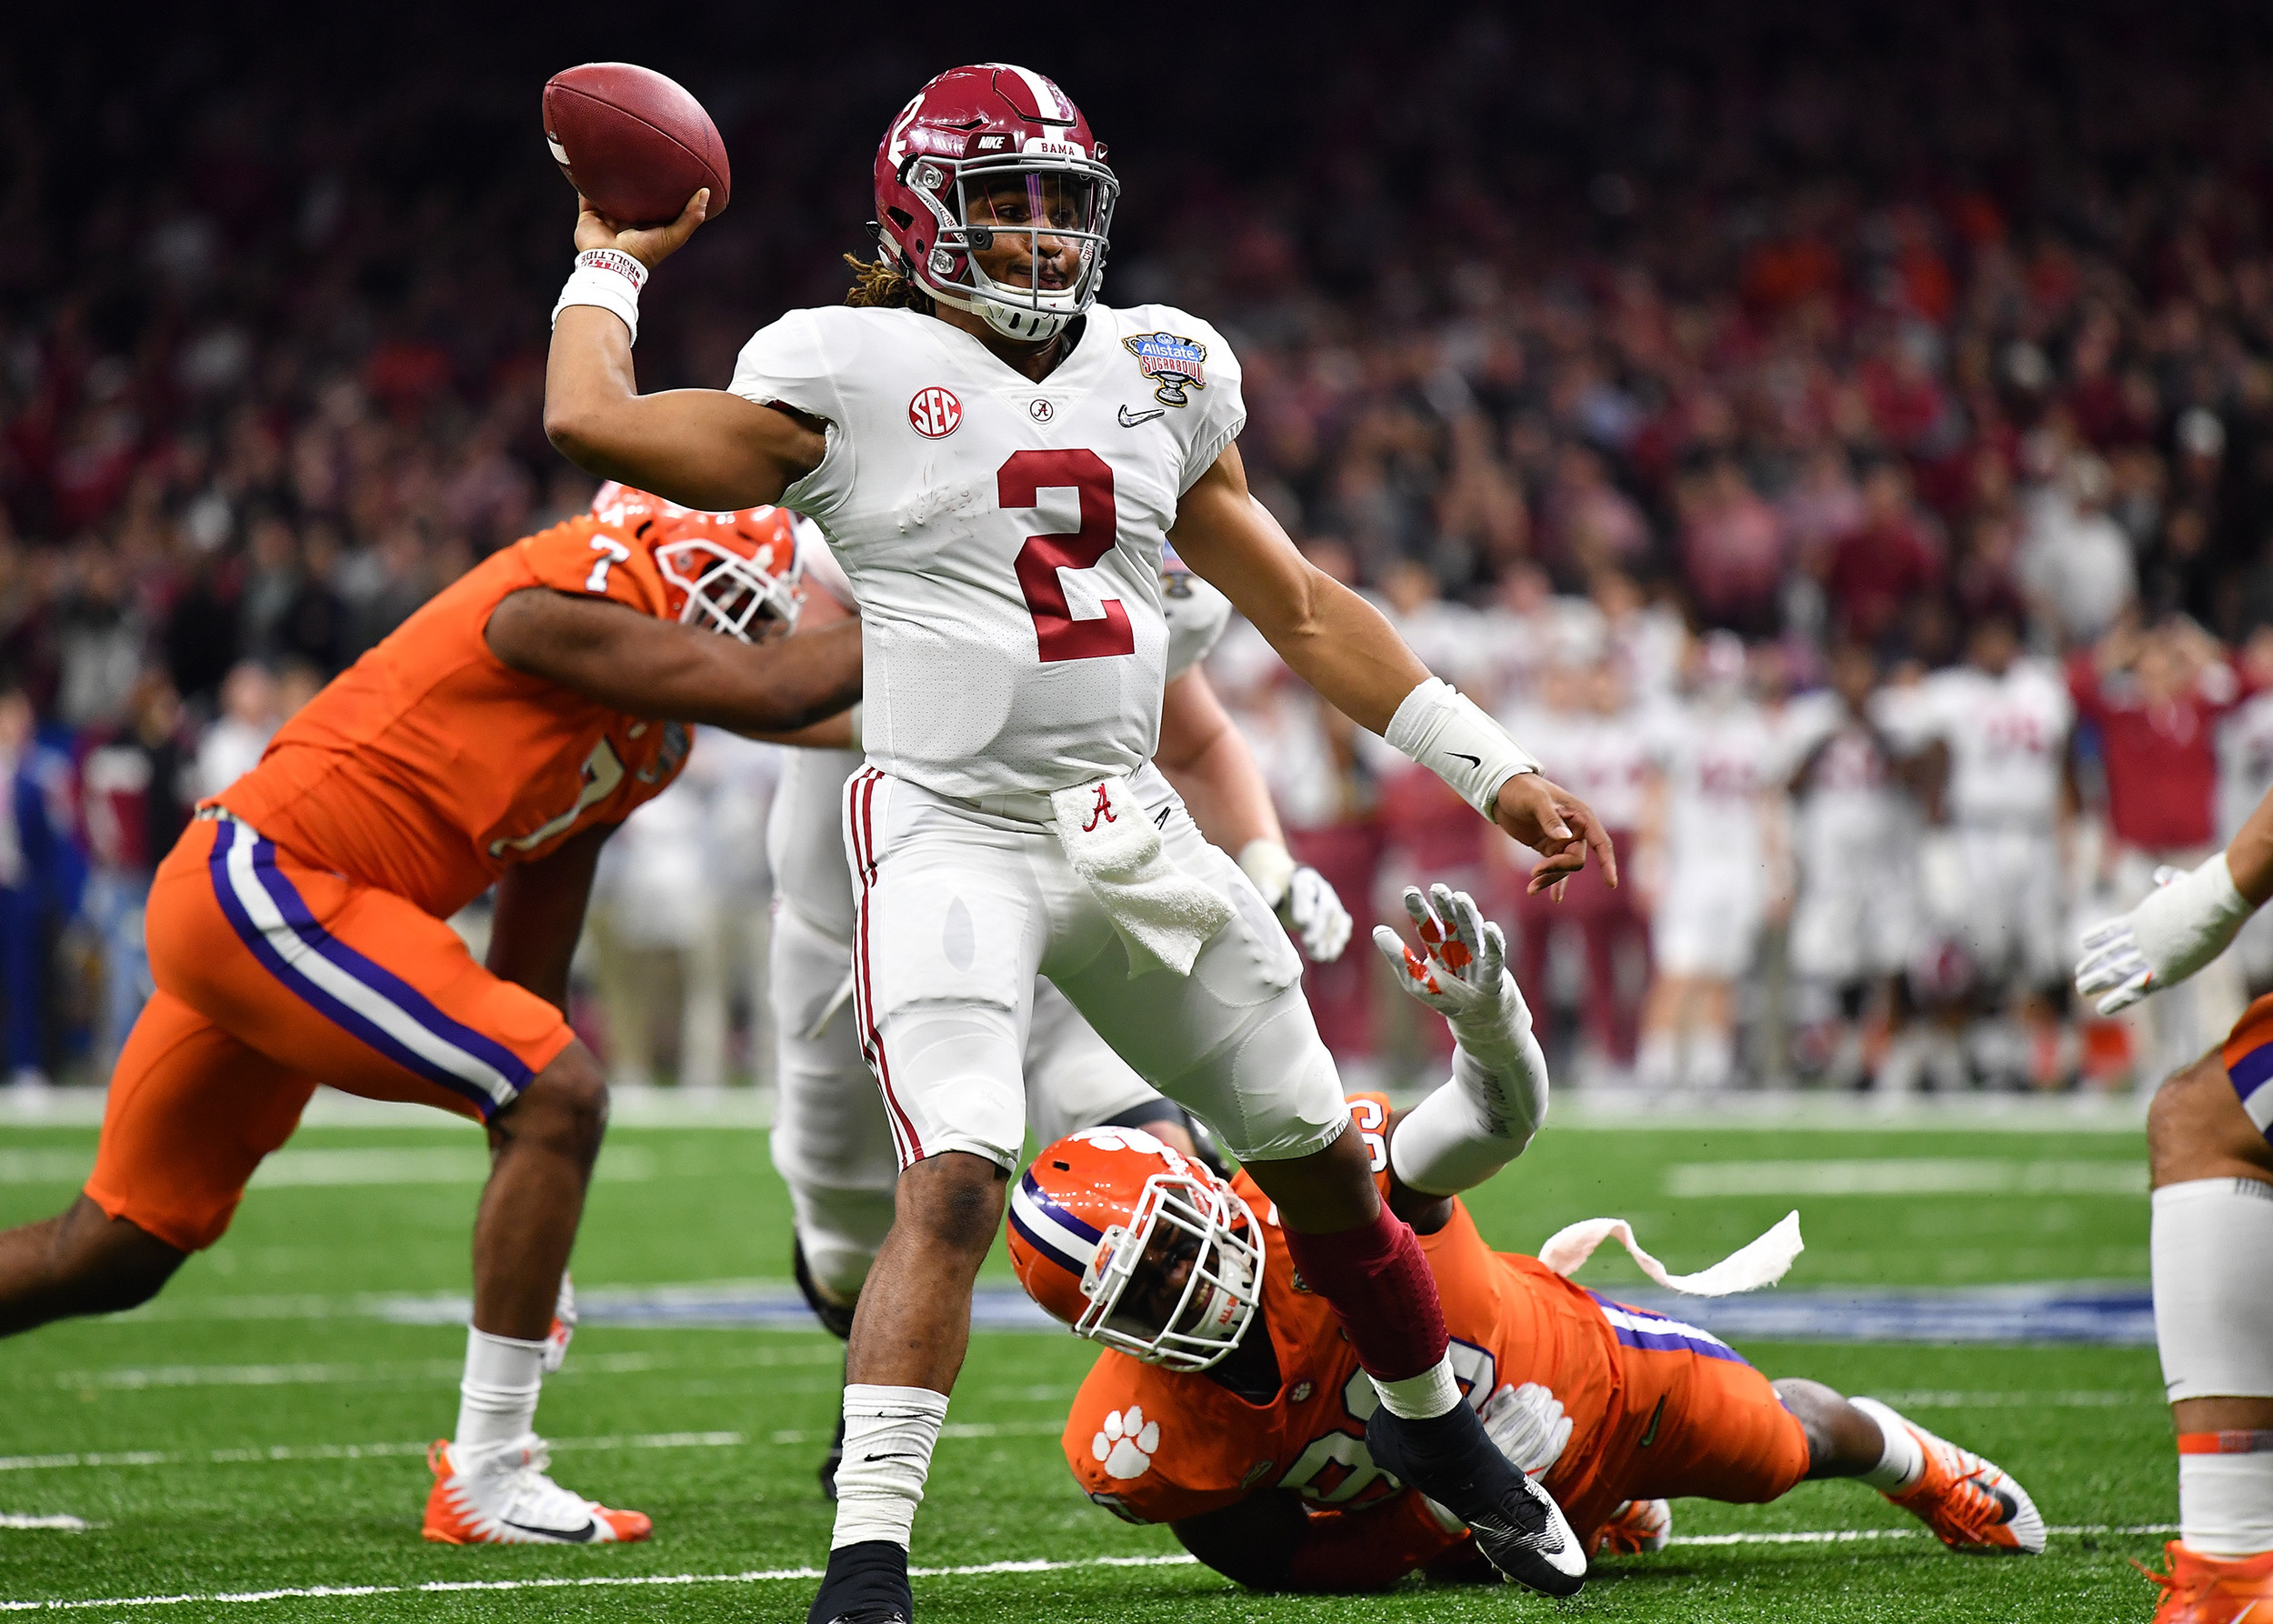 Alabama Crimson Tide quarterback Jalen Hurts avoids a tackle prior to throwing a touchdown pass in the first half of the 2018 AllState Sugar Bowl on Jan. 1, 2018, at the Mercedes-Benz SuperDome in New Orleans, La. Alabama won the game 24-6. (Photo by Lee Walls)